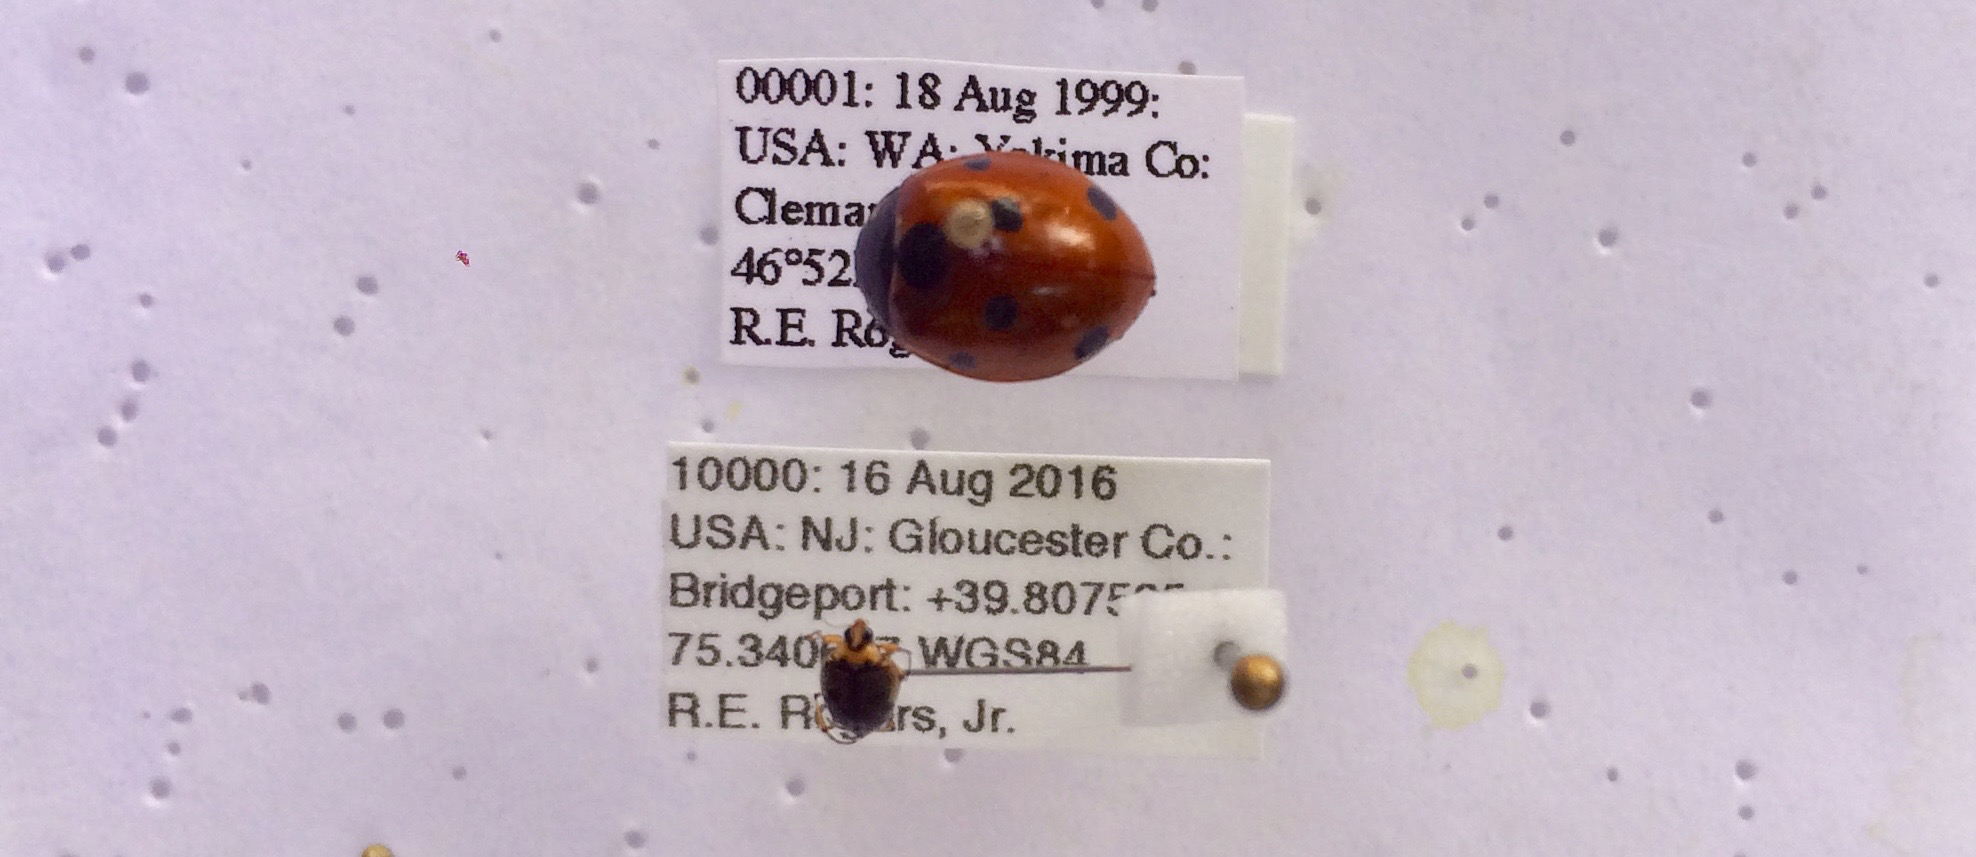 #00001 -Seven Spotted Lady Beetle, Coccinella septempunctata  Linnaeus 1758, collected at Cleman Mountain, Yakima Co., WA, on 18 August 1999; #10000 - Crawling Water Beetle,  Peltodytes edentulus  (LeConte 1863), collected at Bridgeport Township, Gloucester Co., NJ on 16 August 2016.